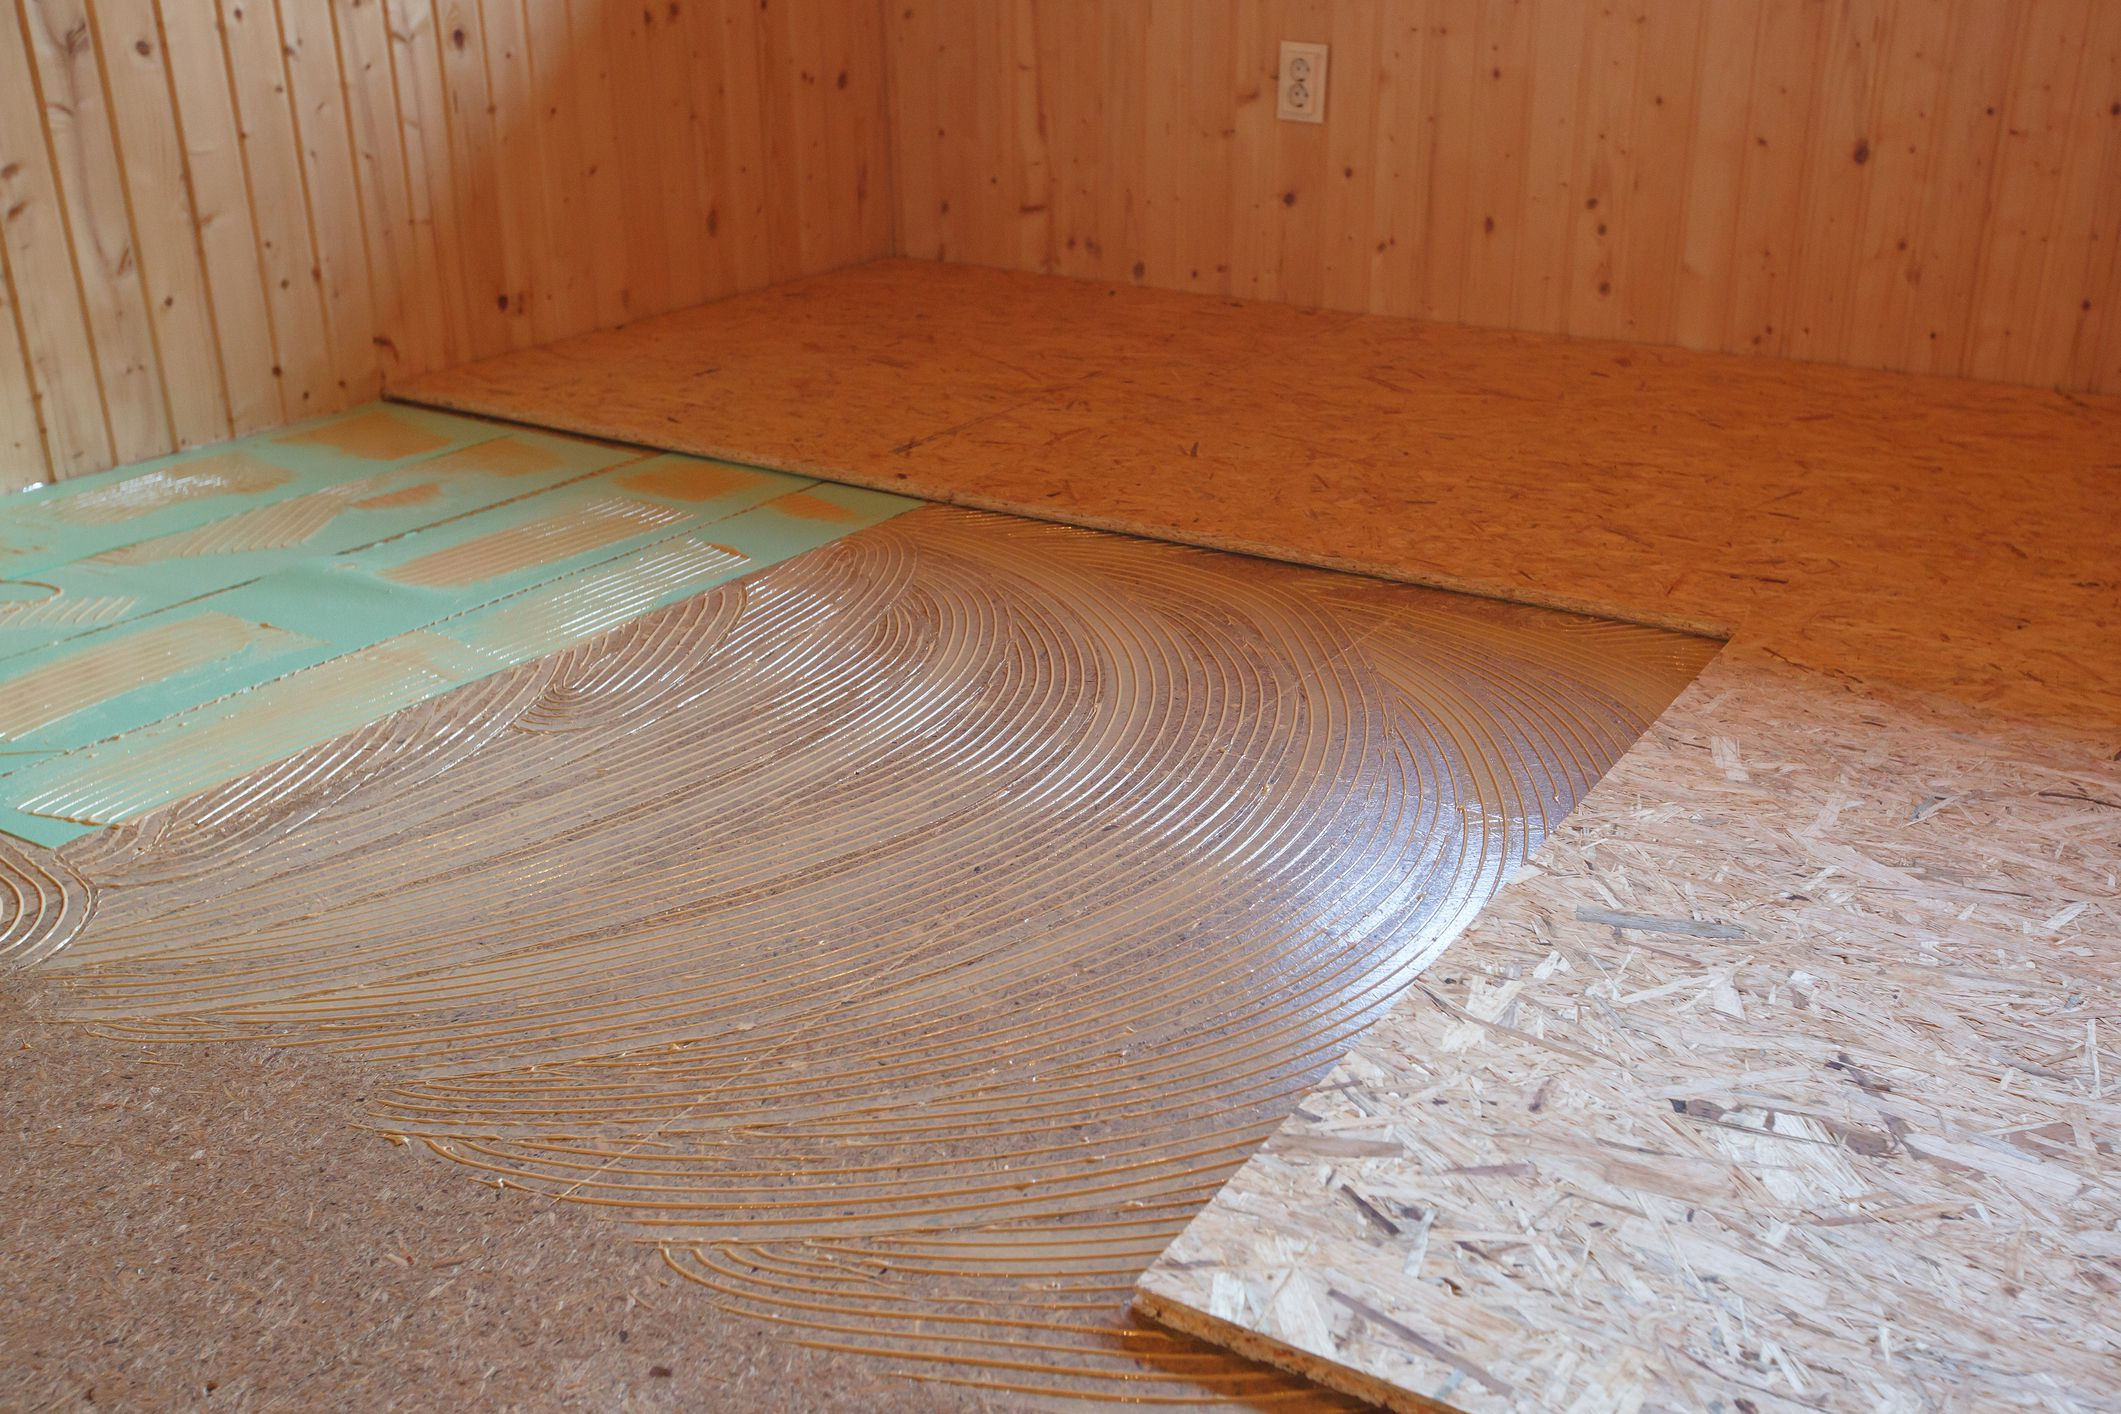 v groove hardwood flooring of types of subfloor materials in construction projects within gettyimages 892047030 5af5f46fc064710036eebd22